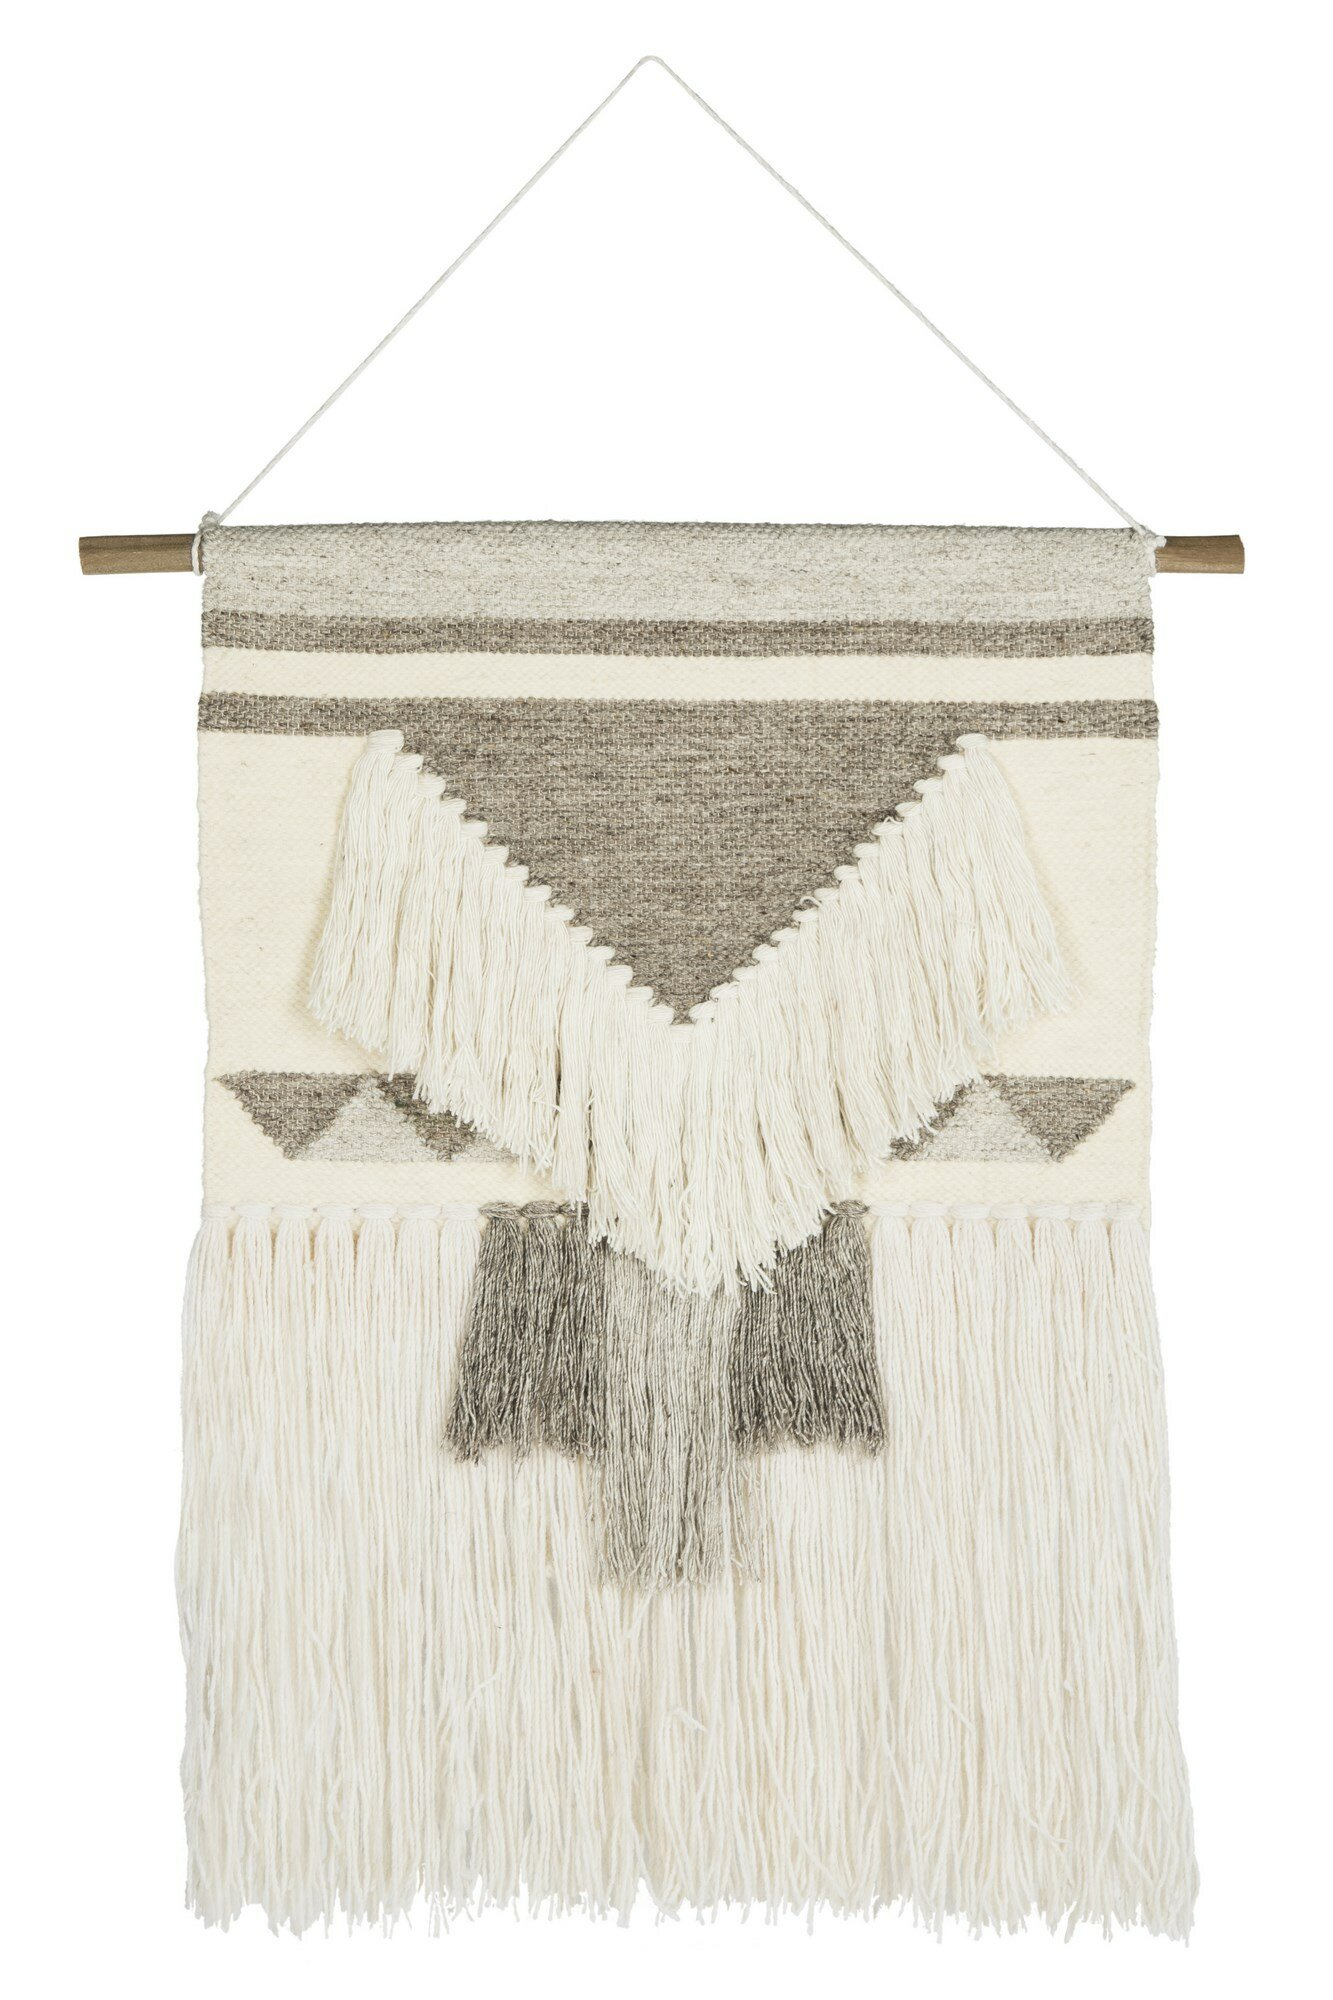 Wool Wall Hanging In 2018 Blended Fabric Teresina Wool And Viscose Wall Hangings With Hanging Accessories Included (View 8 of 20)